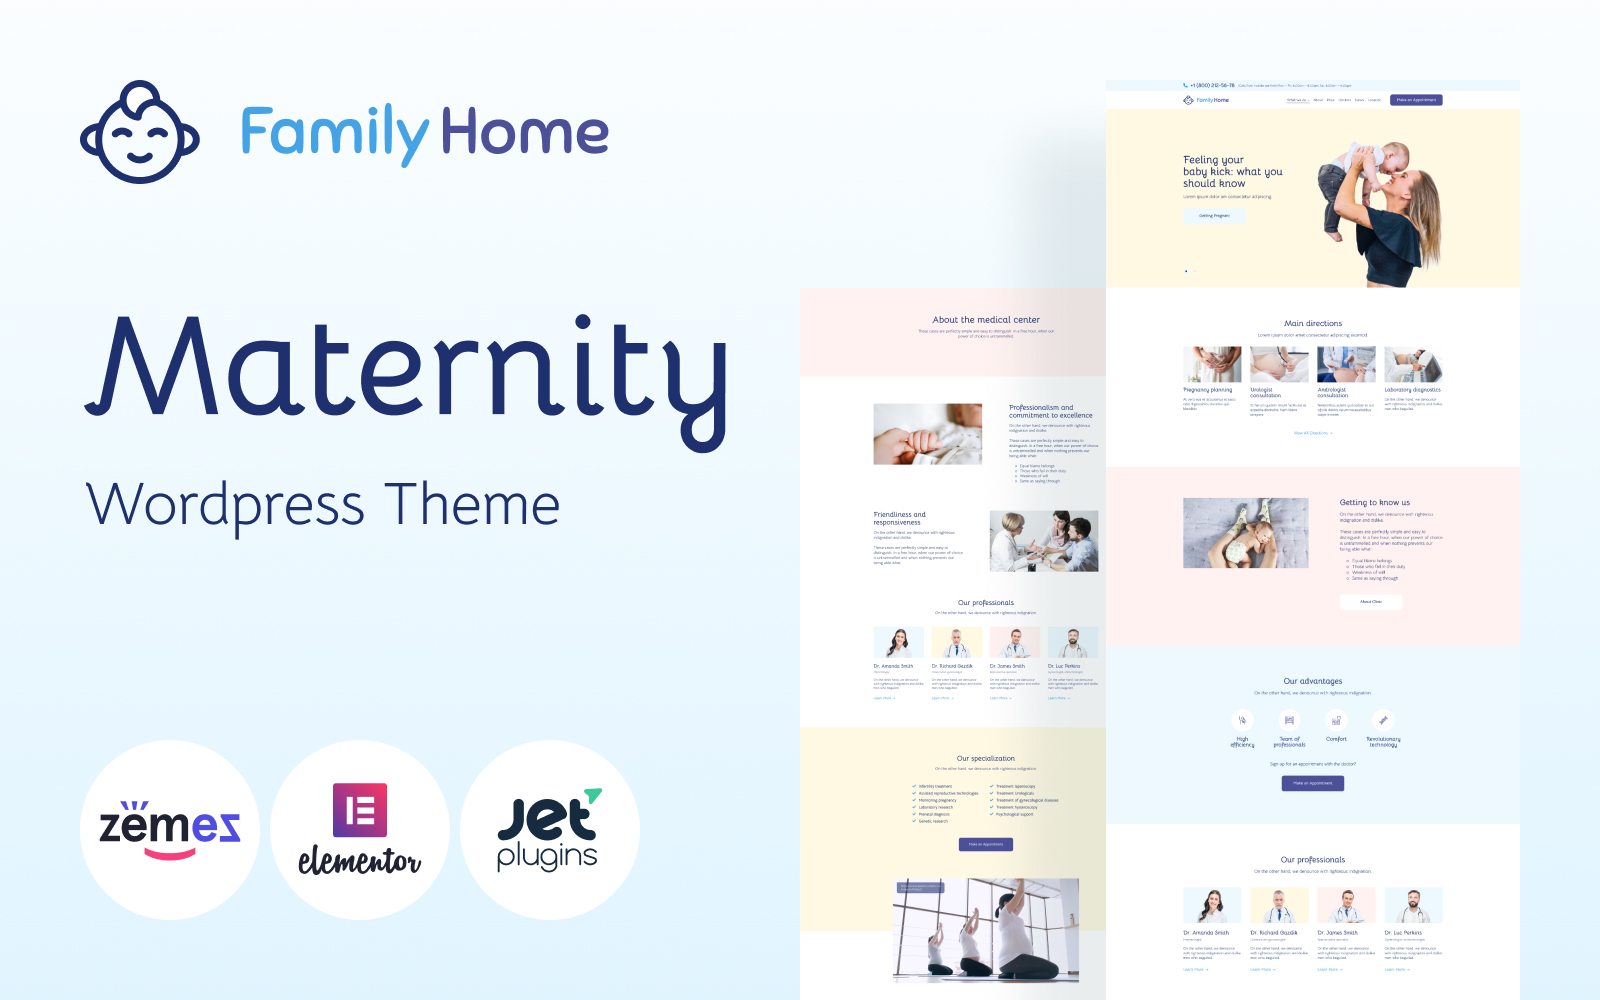 FamilyHome - Pregnancy and Maternity WordPress Theme